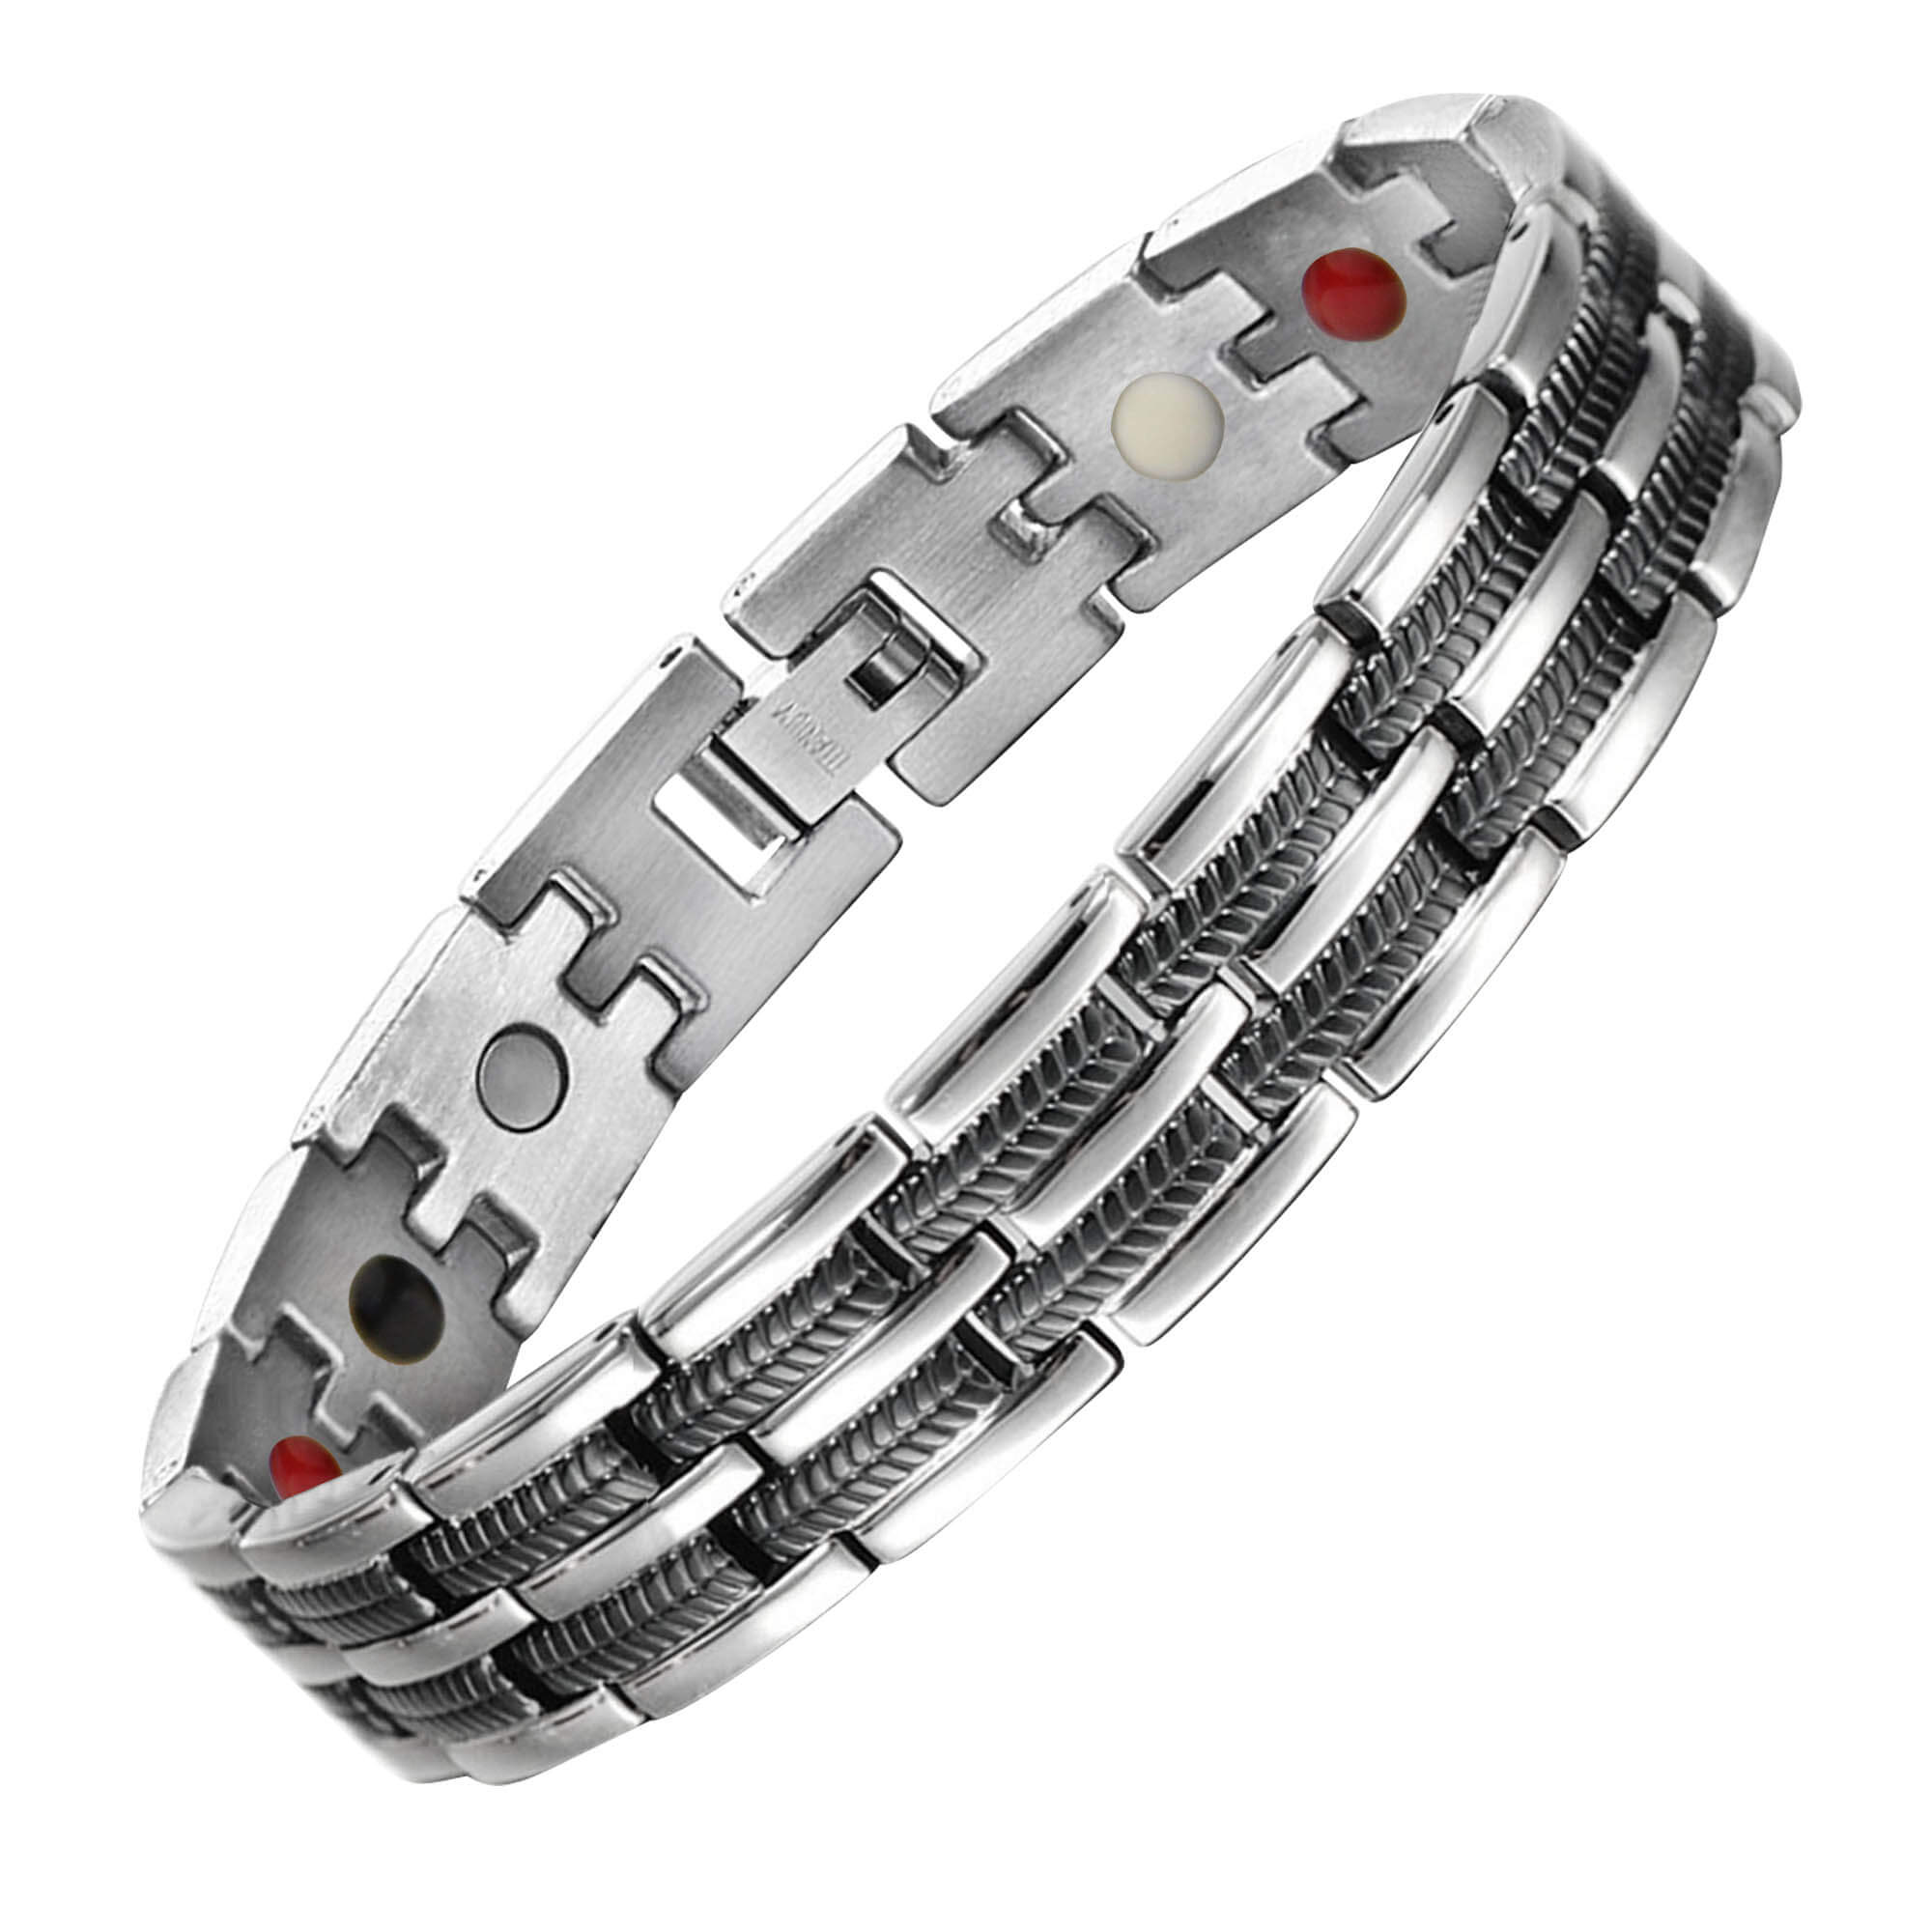 Titanium Bracelet for Men with Magnetic Therapy for Arthritis Pain Relief